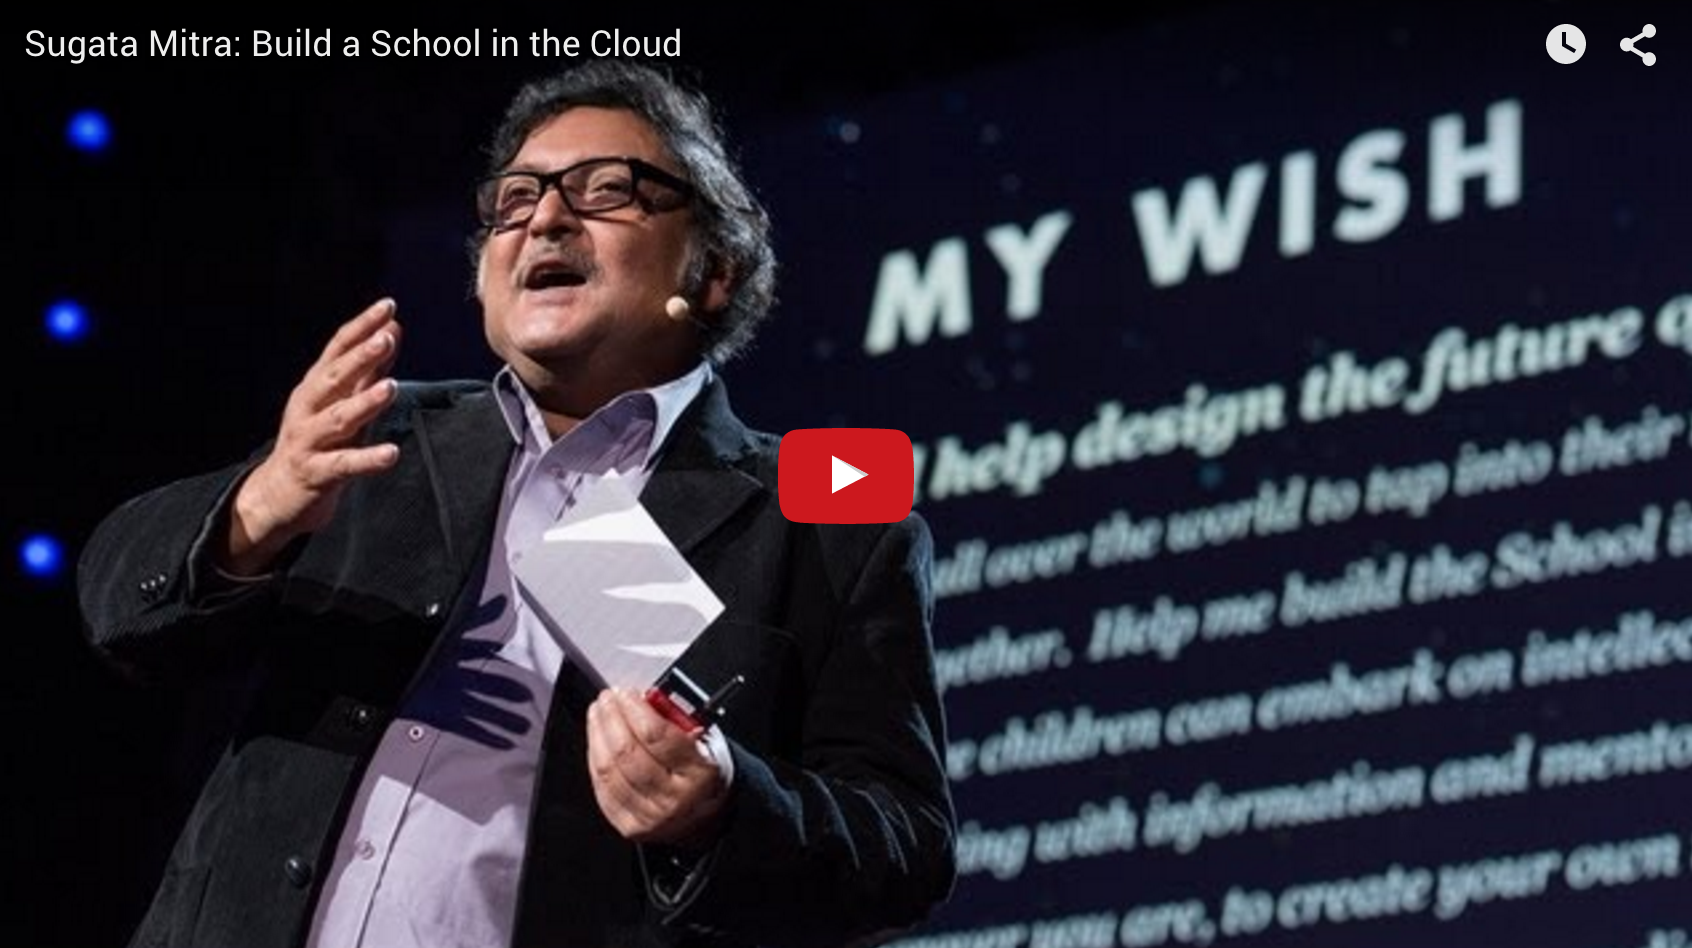 TED: Sugata Mitra: Build a School in the Cloud